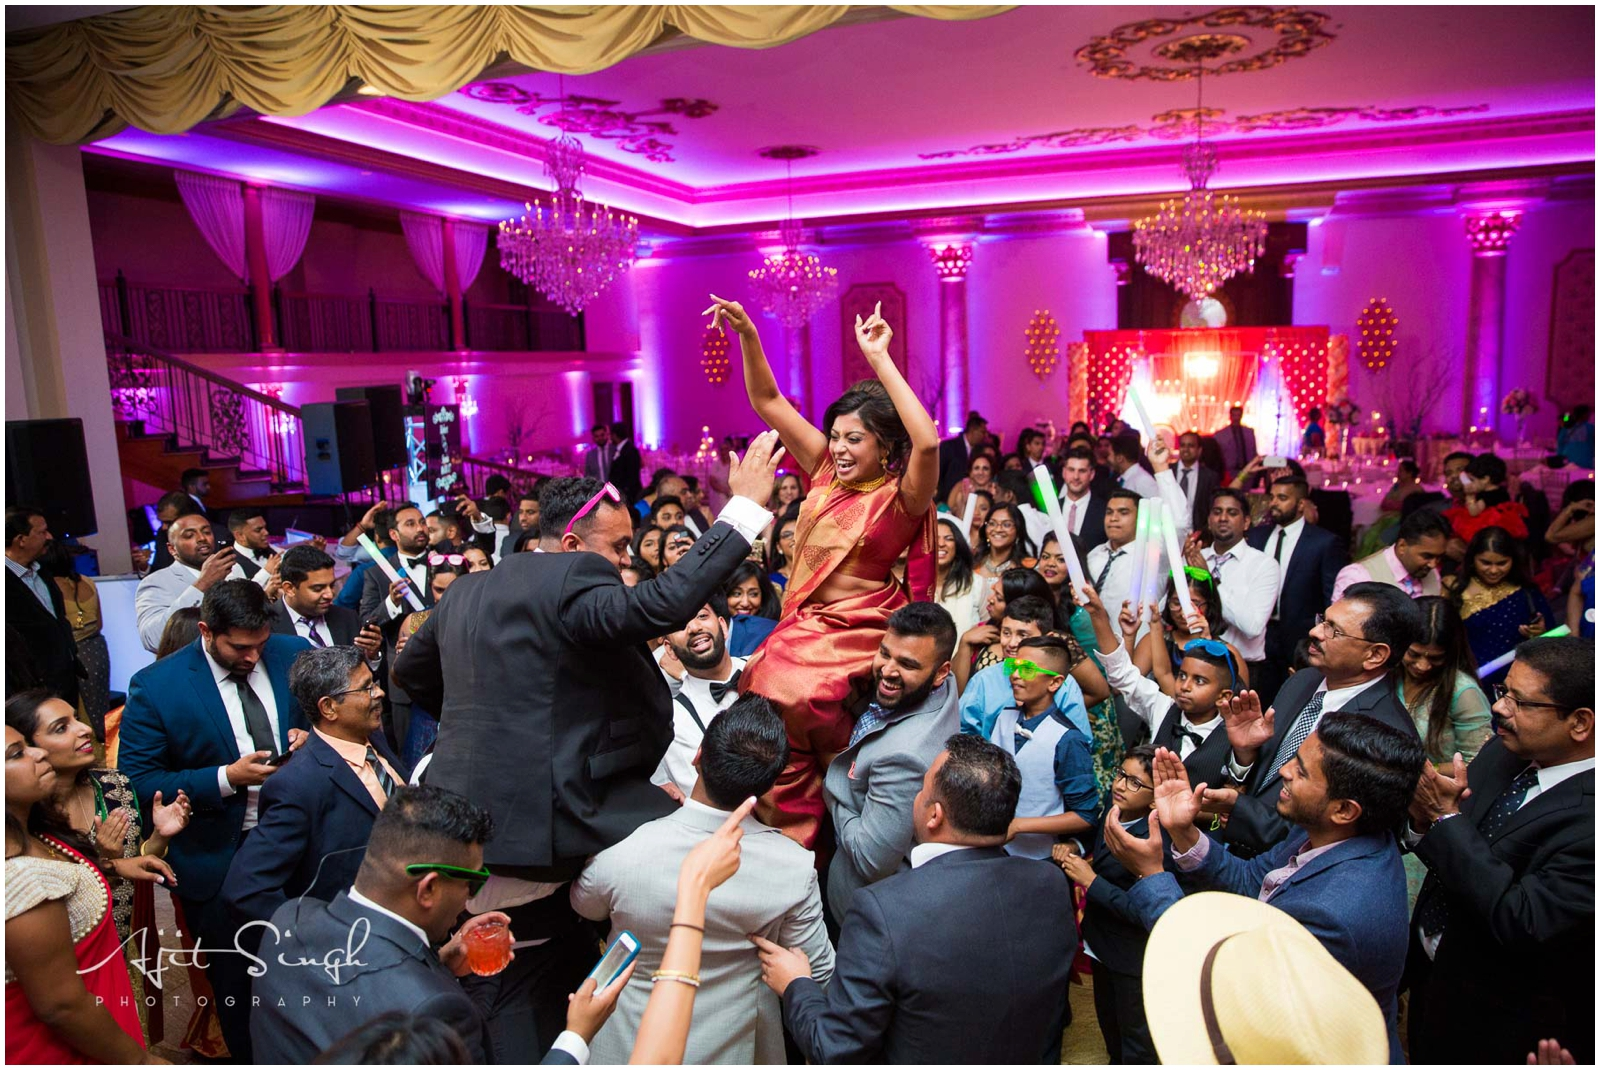 luciens-manor-wedding-a-singh-photography_0045